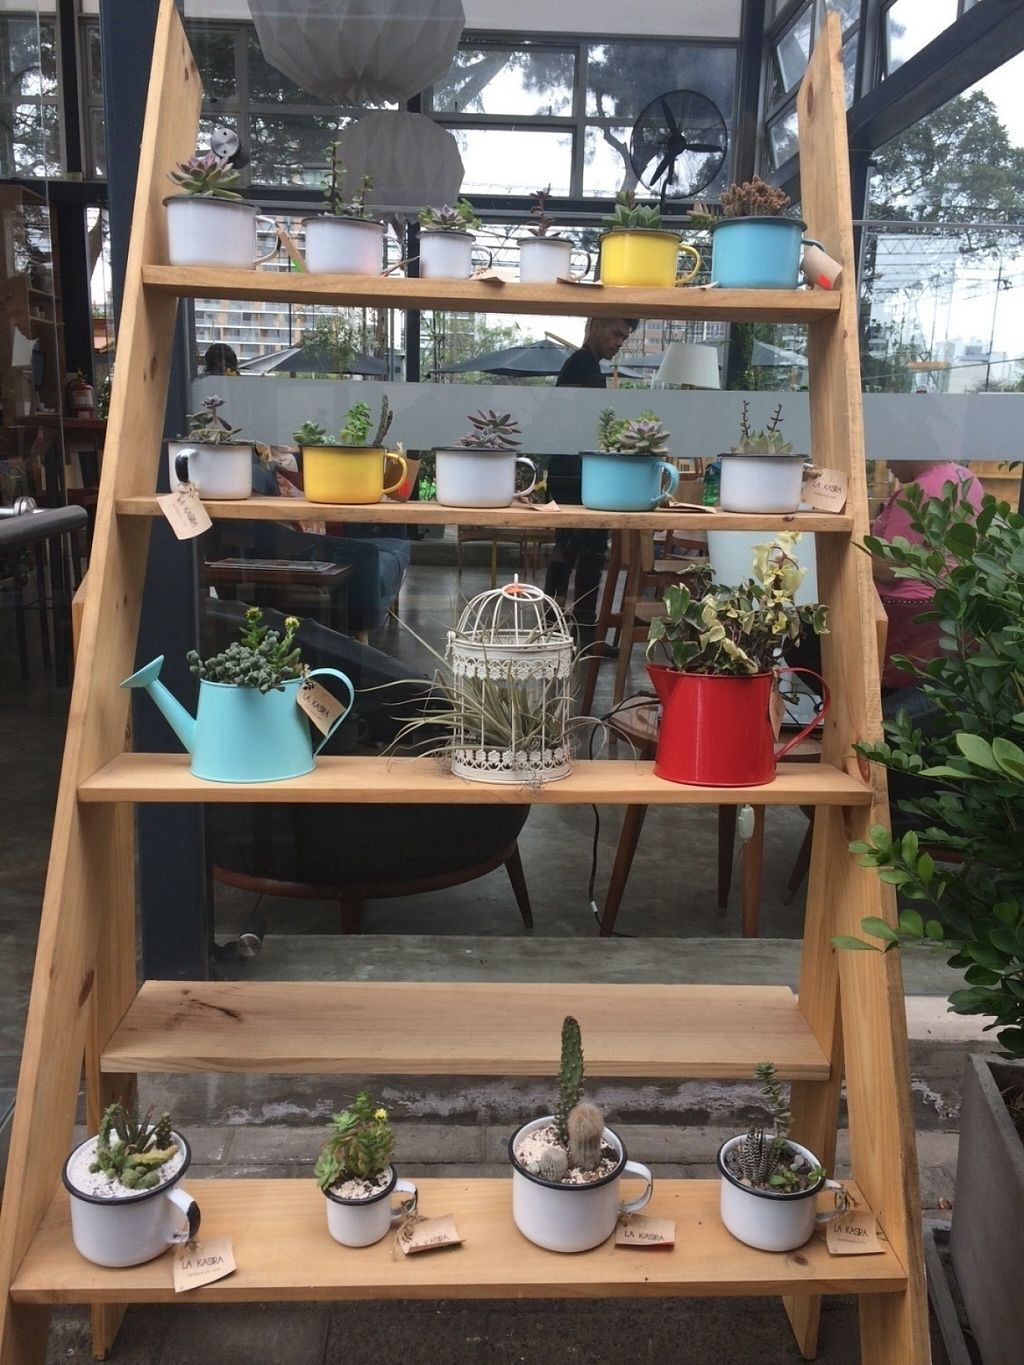 """Photo of La Bodega Verde  by <a href=""""/members/profile/AlinaNunes"""">AlinaNunes</a> <br/>Very cute decoration <br/> August 6, 2016  - <a href='/contact/abuse/image/77857/166039'>Report</a>"""